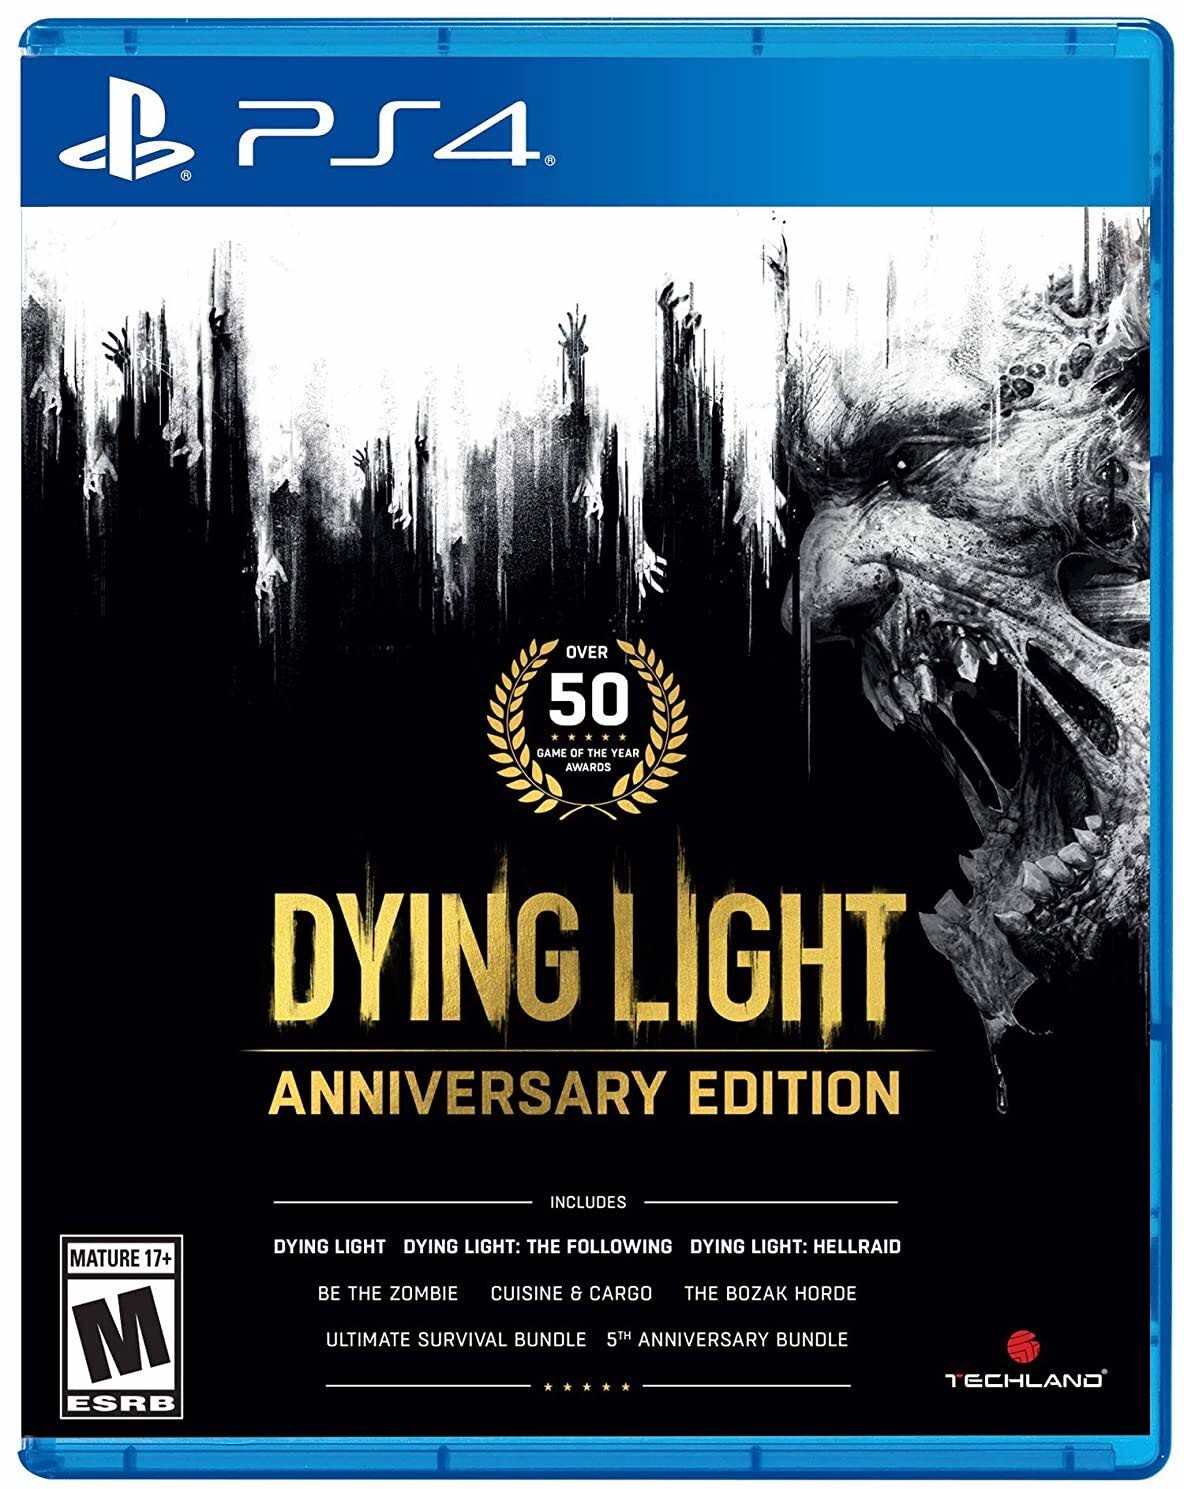 847 - Dying Light Anniversary Edition